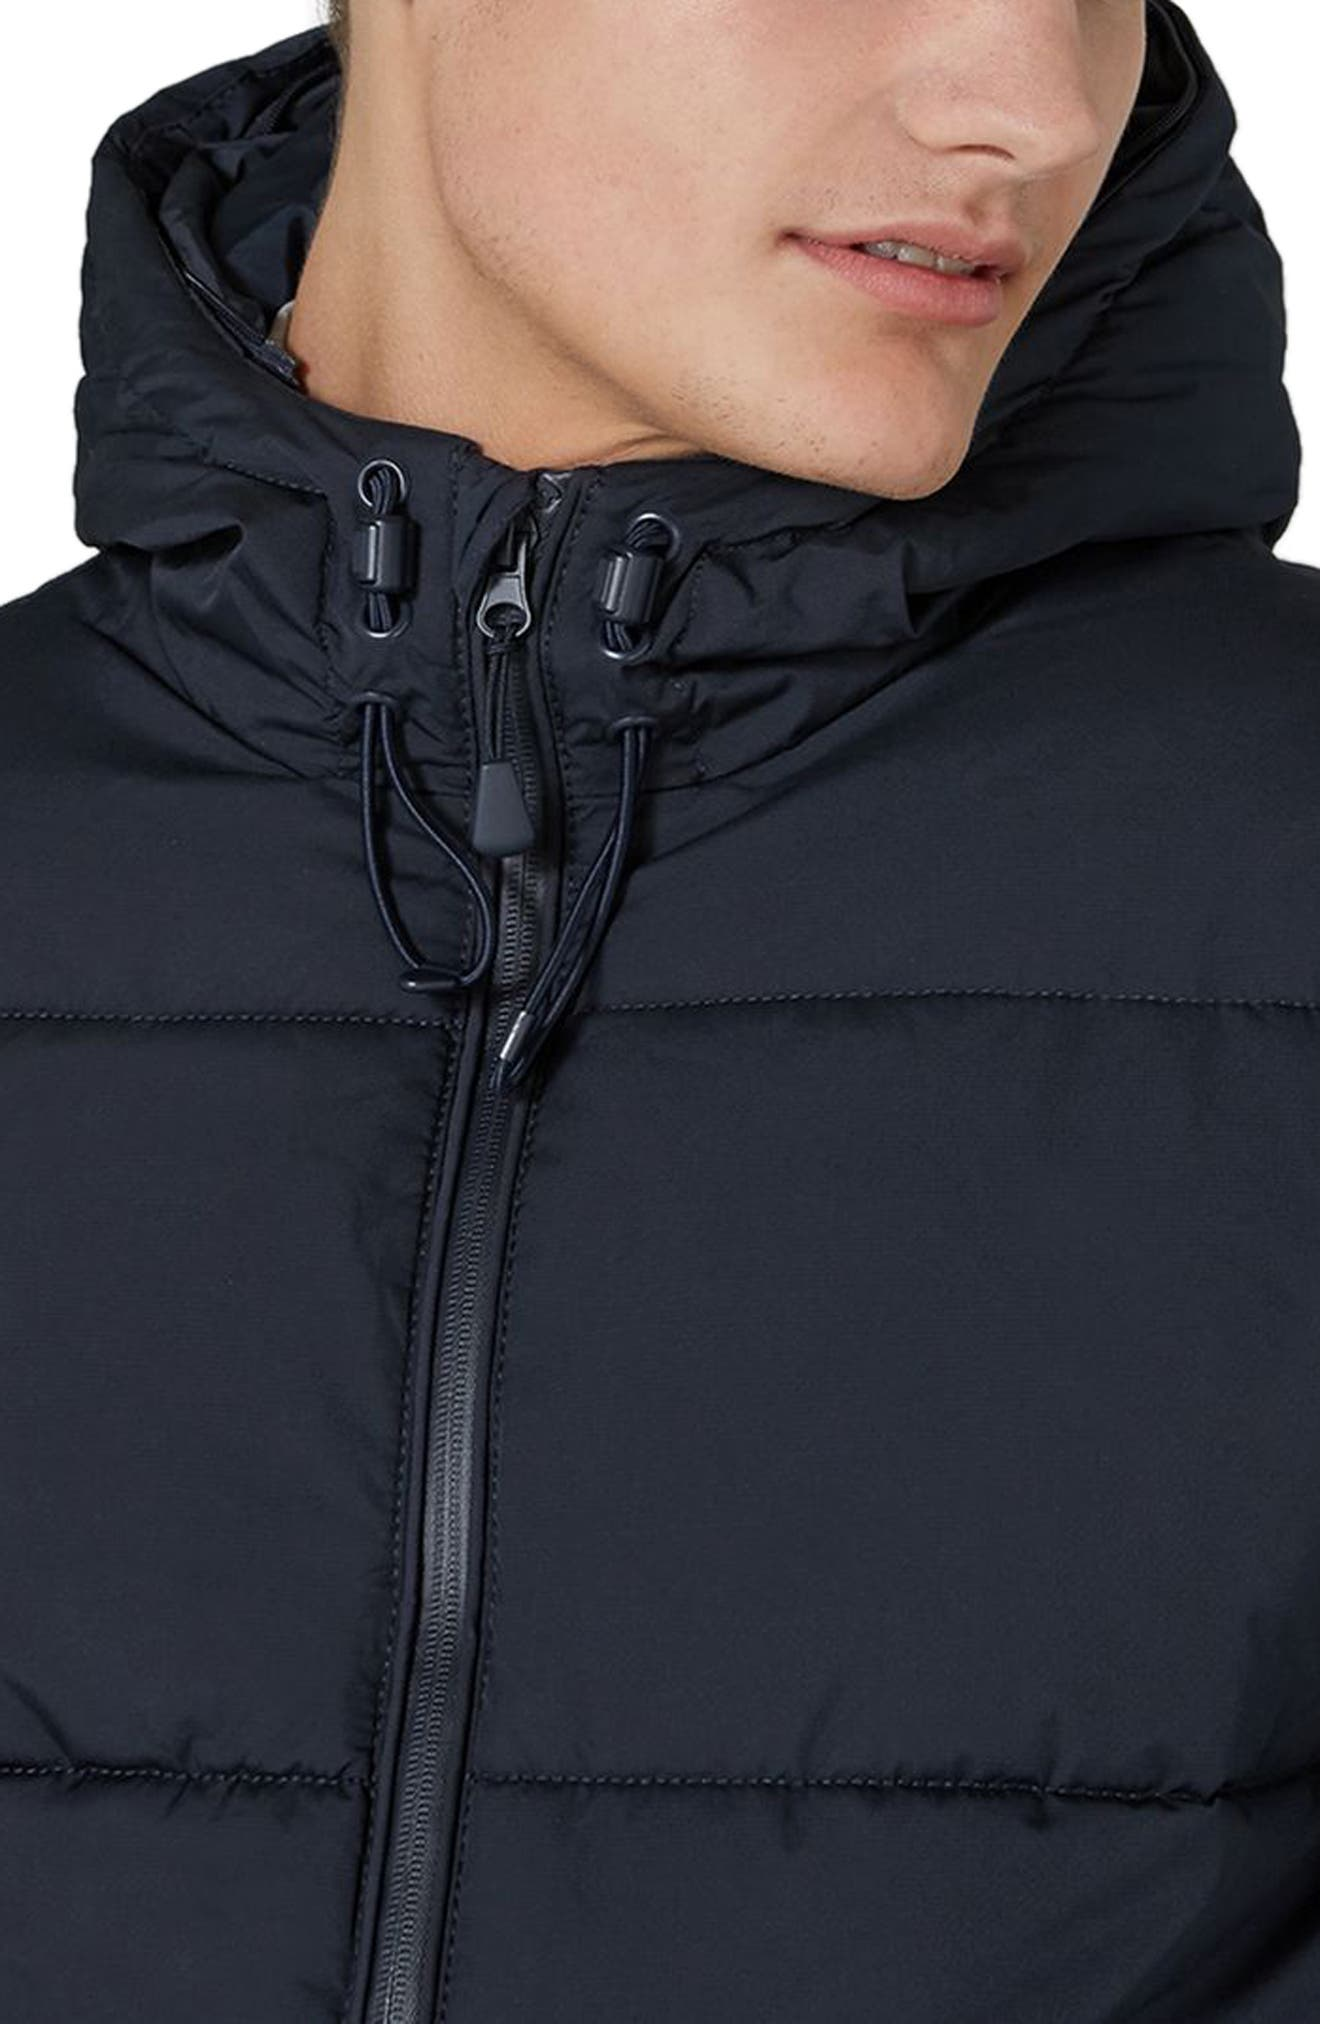 Maguire Hooded Puffer Coat with Faux Fur Trim,                             Alternate thumbnail 3, color,                             Navy Blue